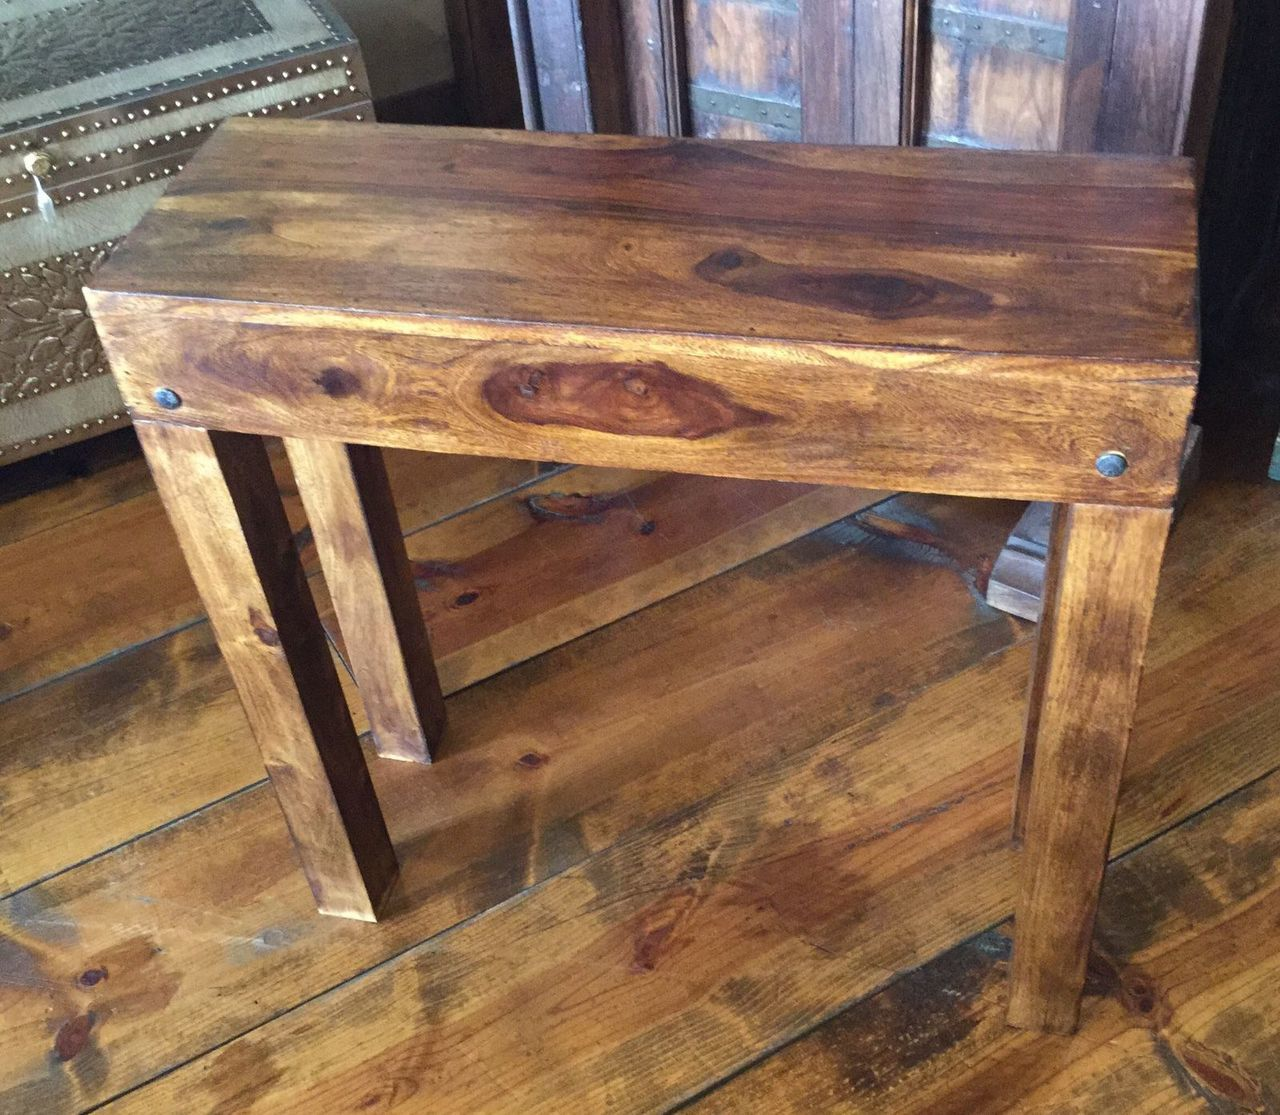 accent table rustic reclaimed hardwood narrow depth brown finish wood tables round tablecloth small barn door hardware dale tiffany floor lamp tall bar display coffee ikea side